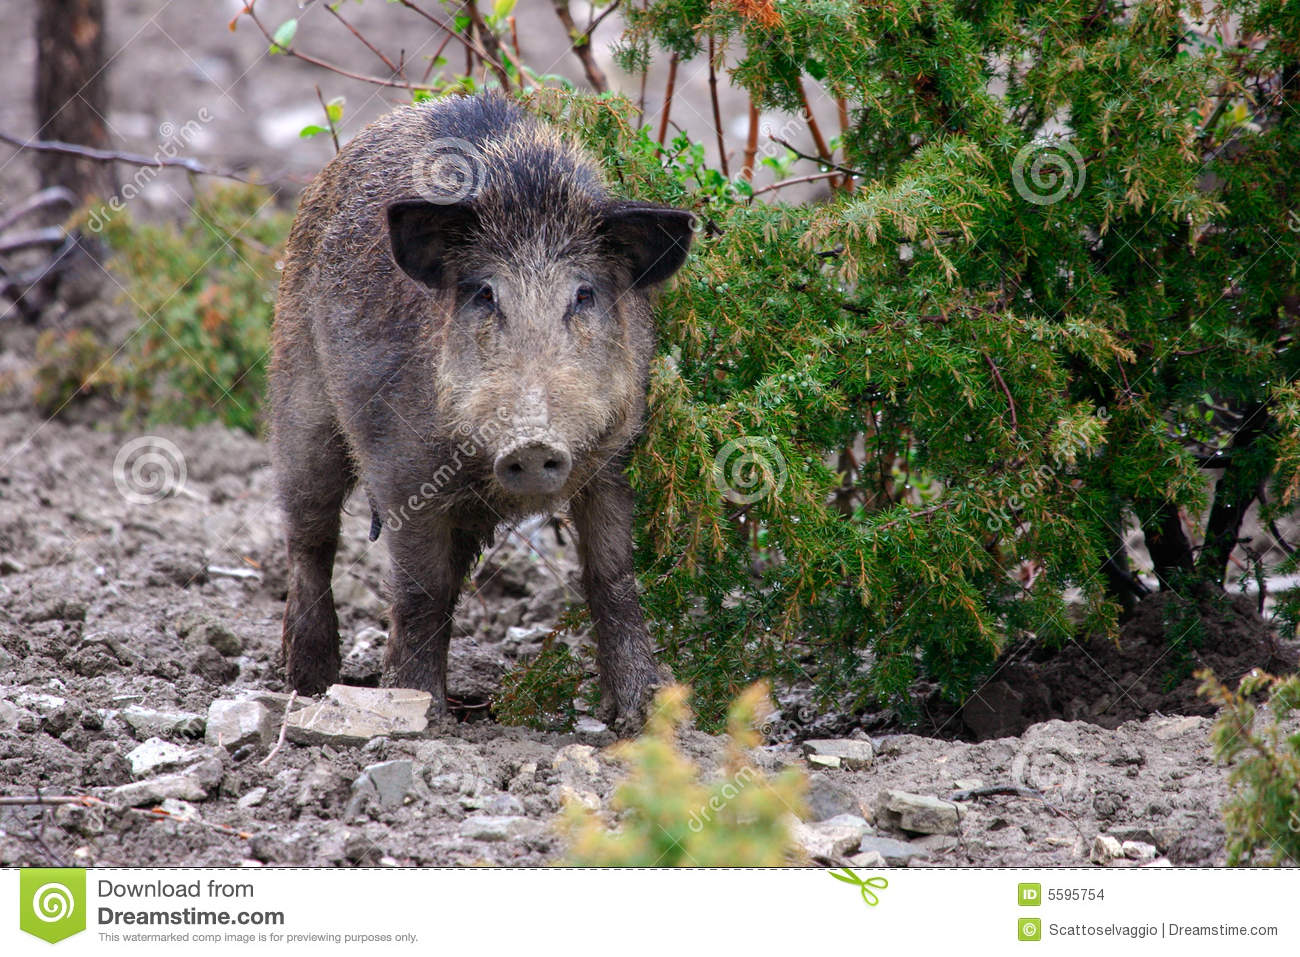 Female Wild boar (Sus scrofa) in the Apennine mountains bushes, Italy.